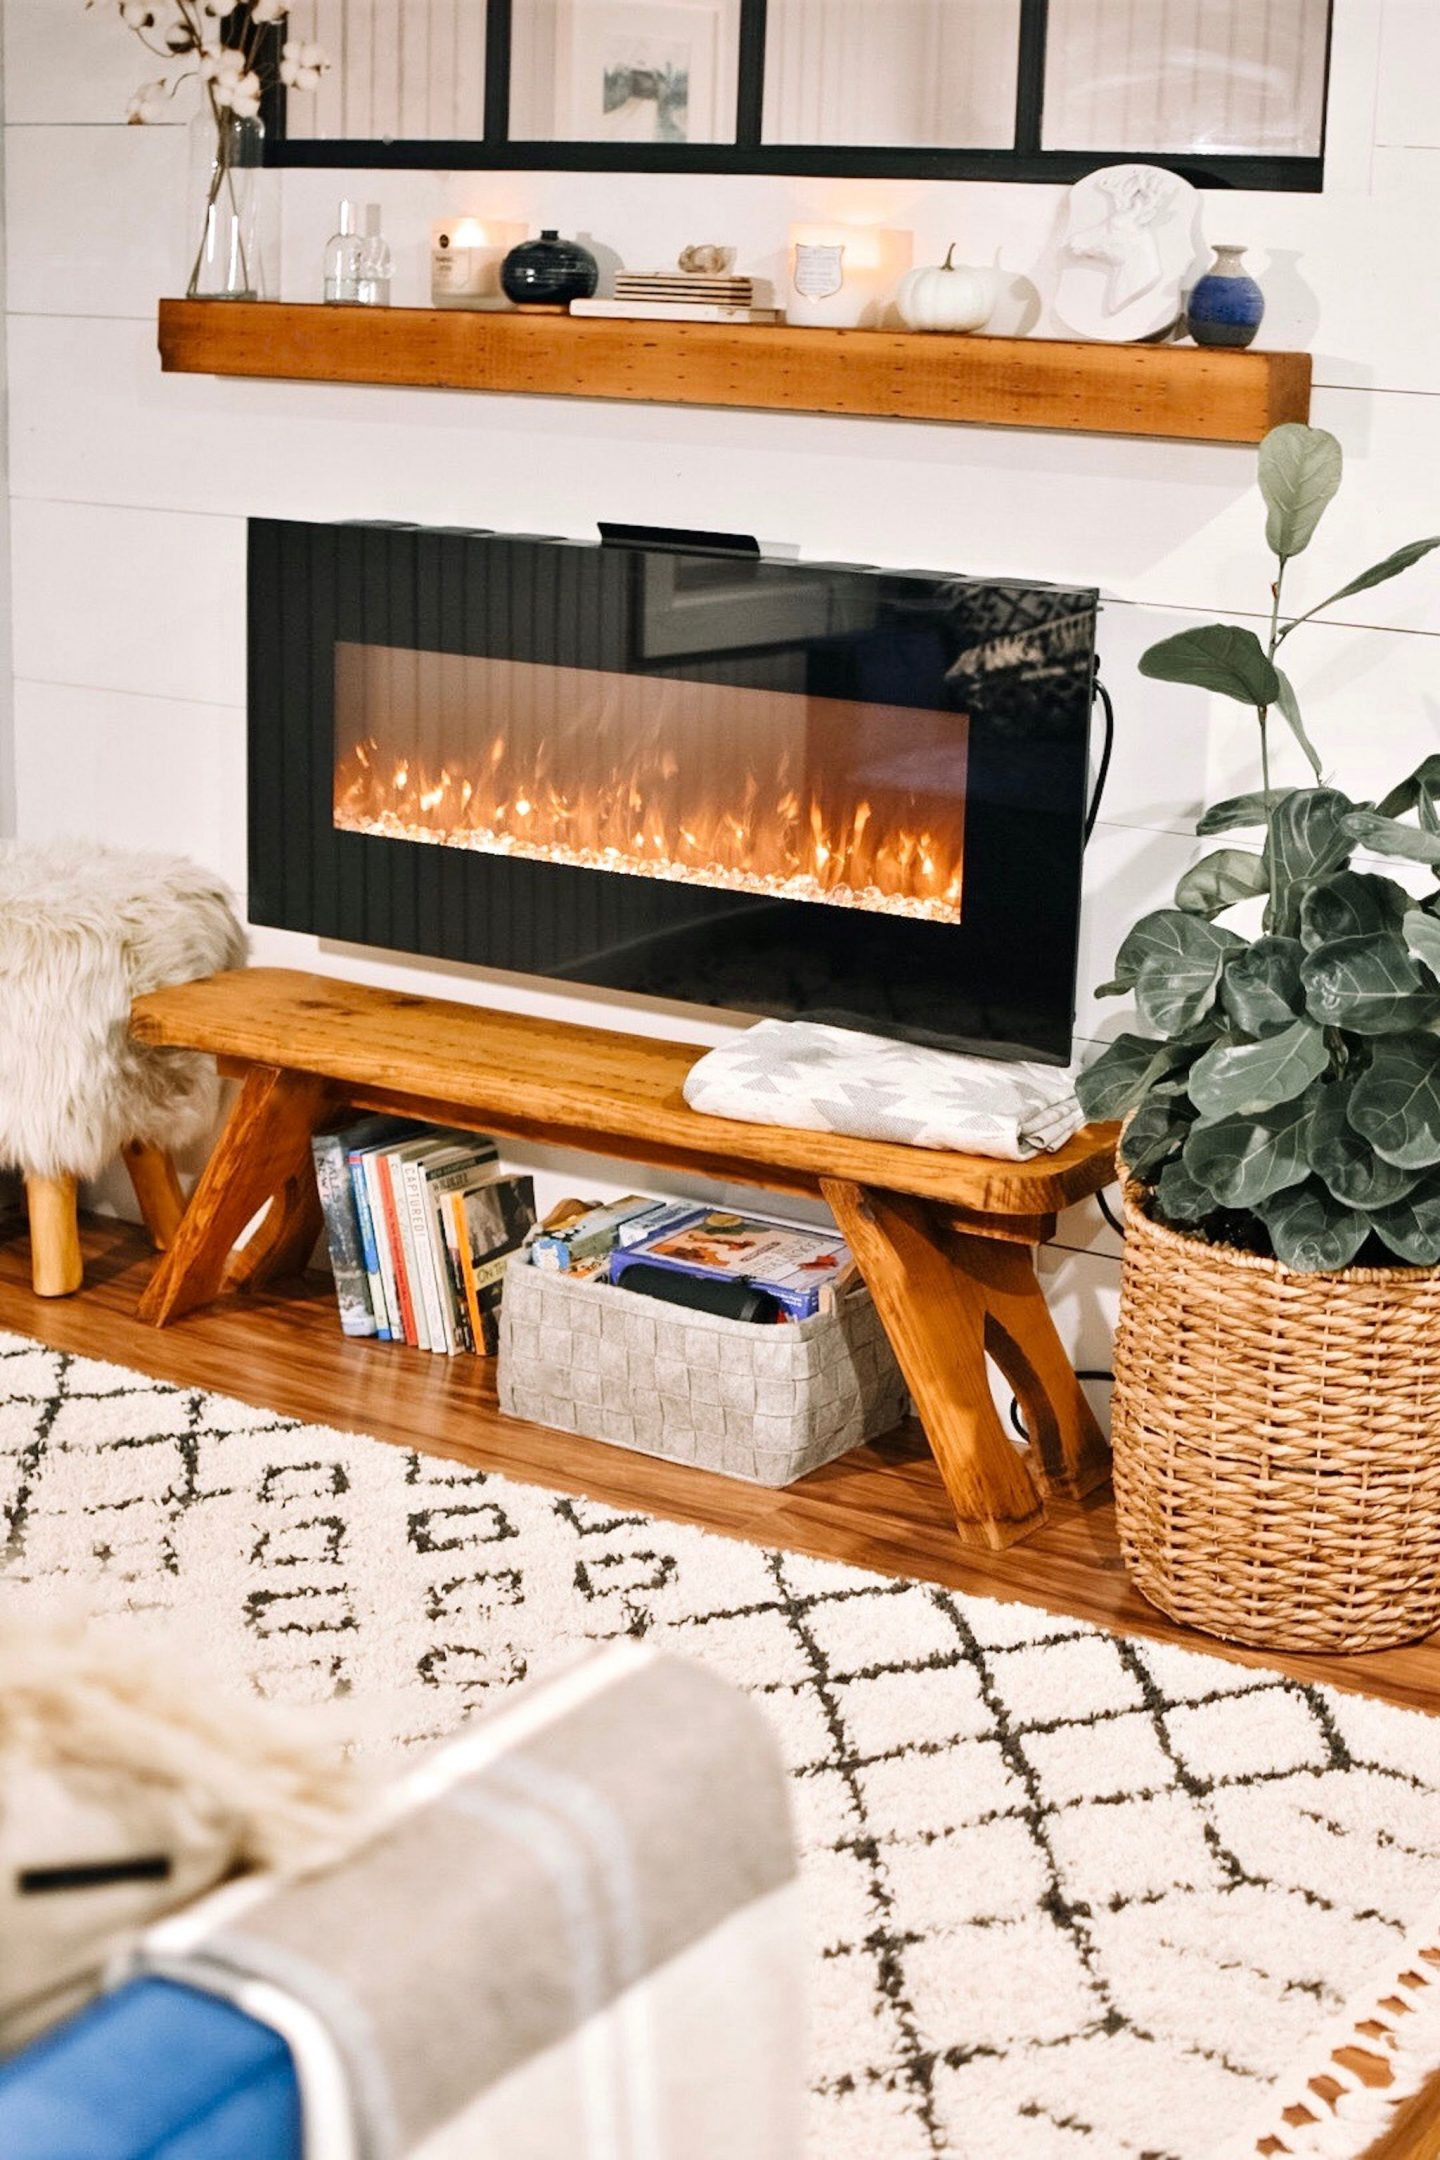 QUICK AND EFFECTIVE WAYS TO BEAUTIFY YOUR LIVING AREA